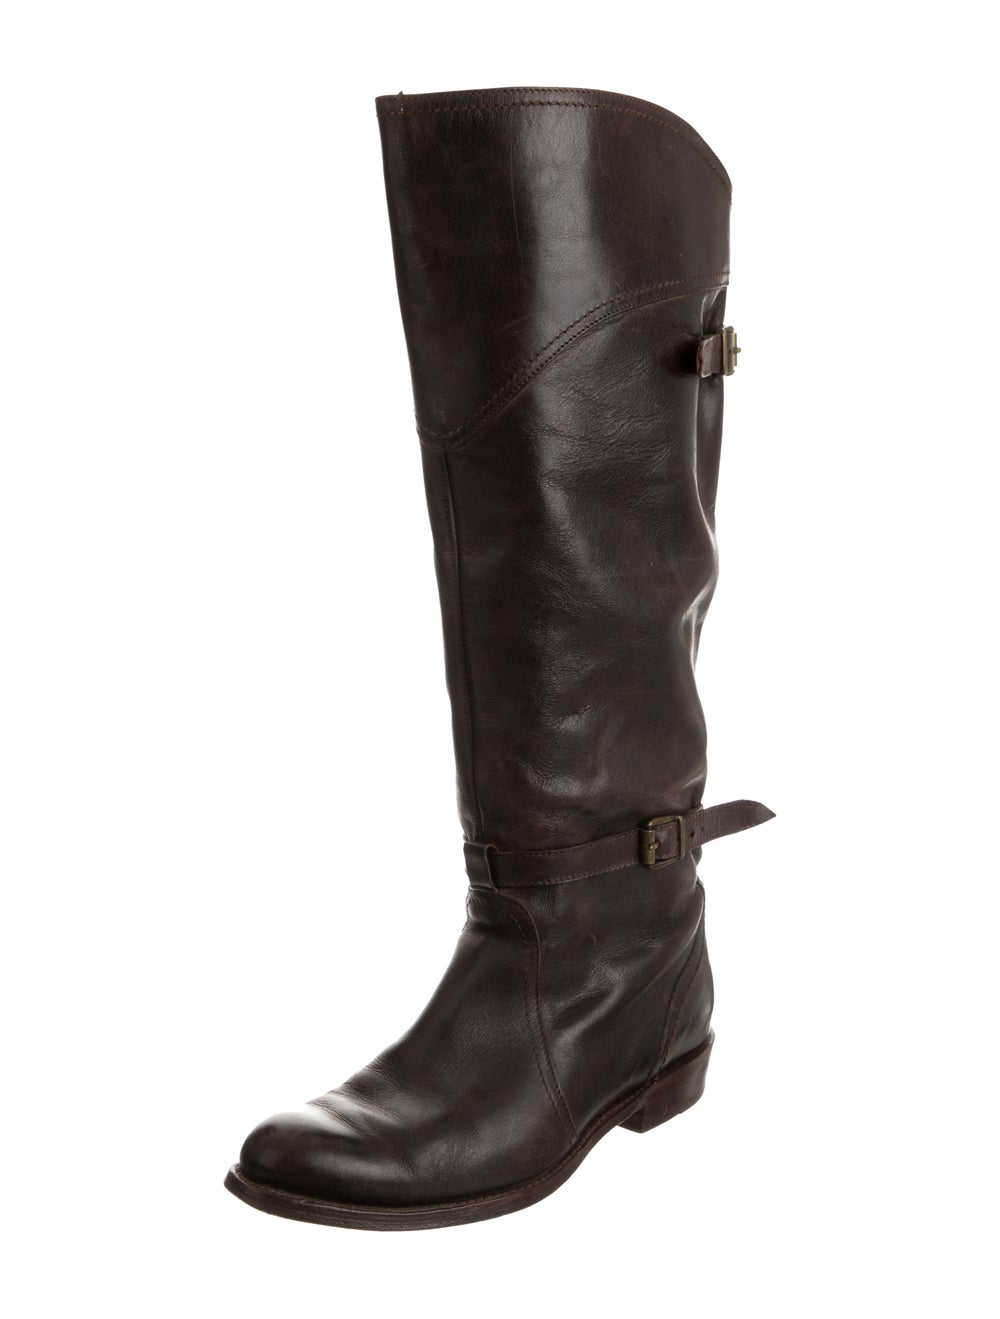 Frye Leather Knee-High Boots Brown - image 2